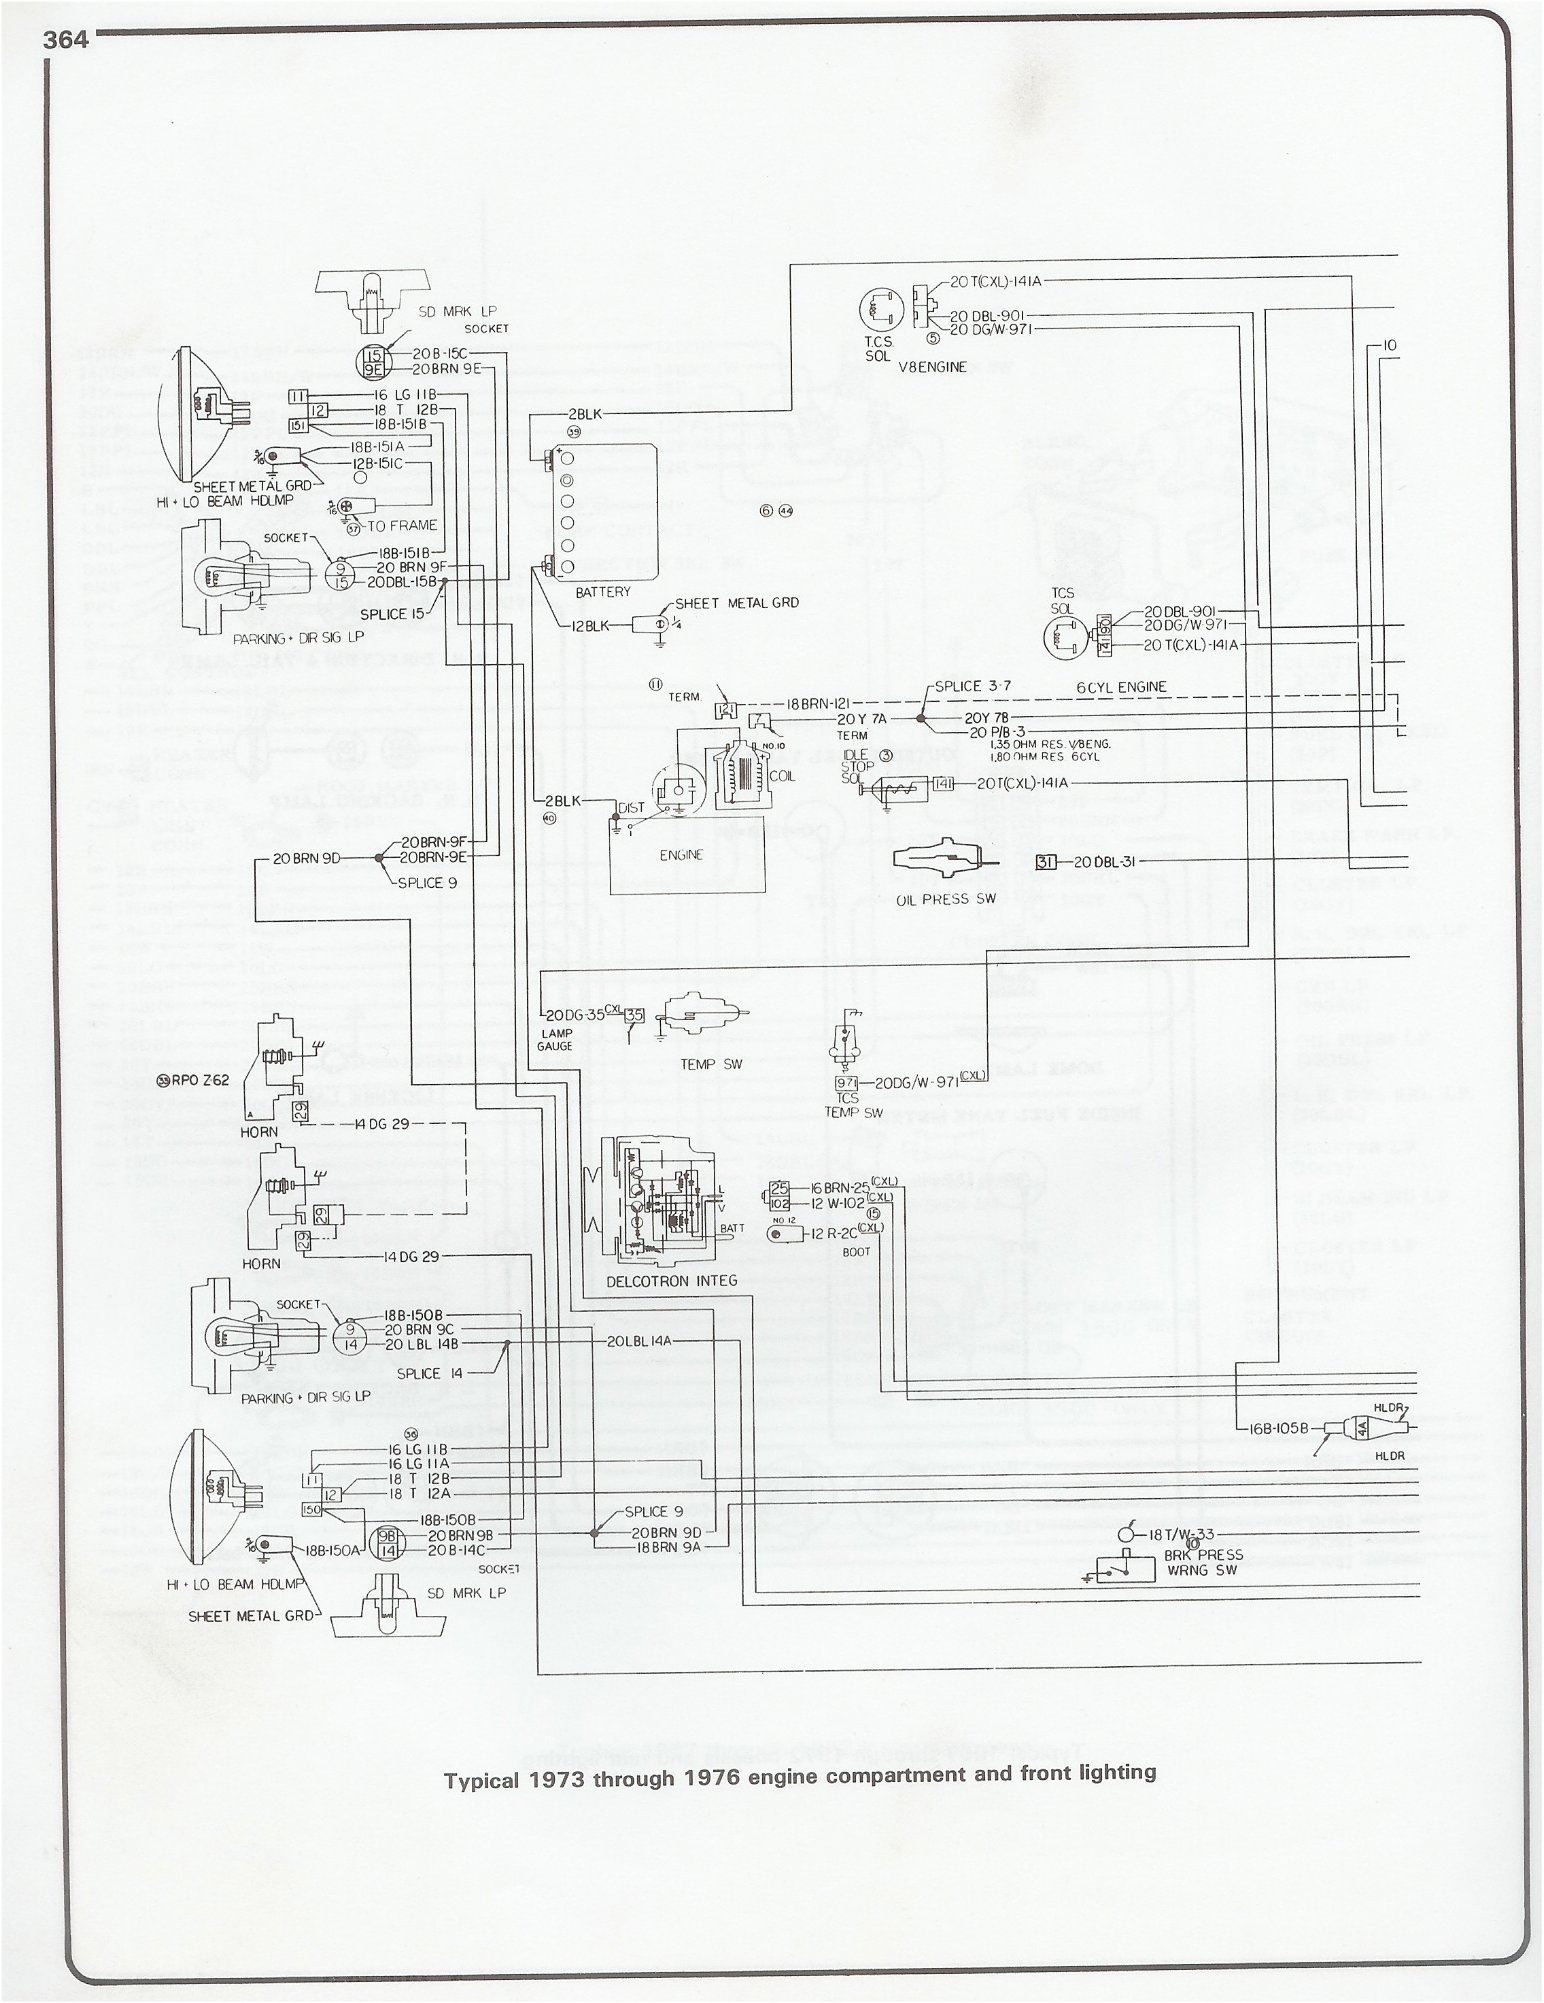 hight resolution of  diagram source 79 chevy truck complete 73 87 wiring diagrams73 76 engine and front lighting